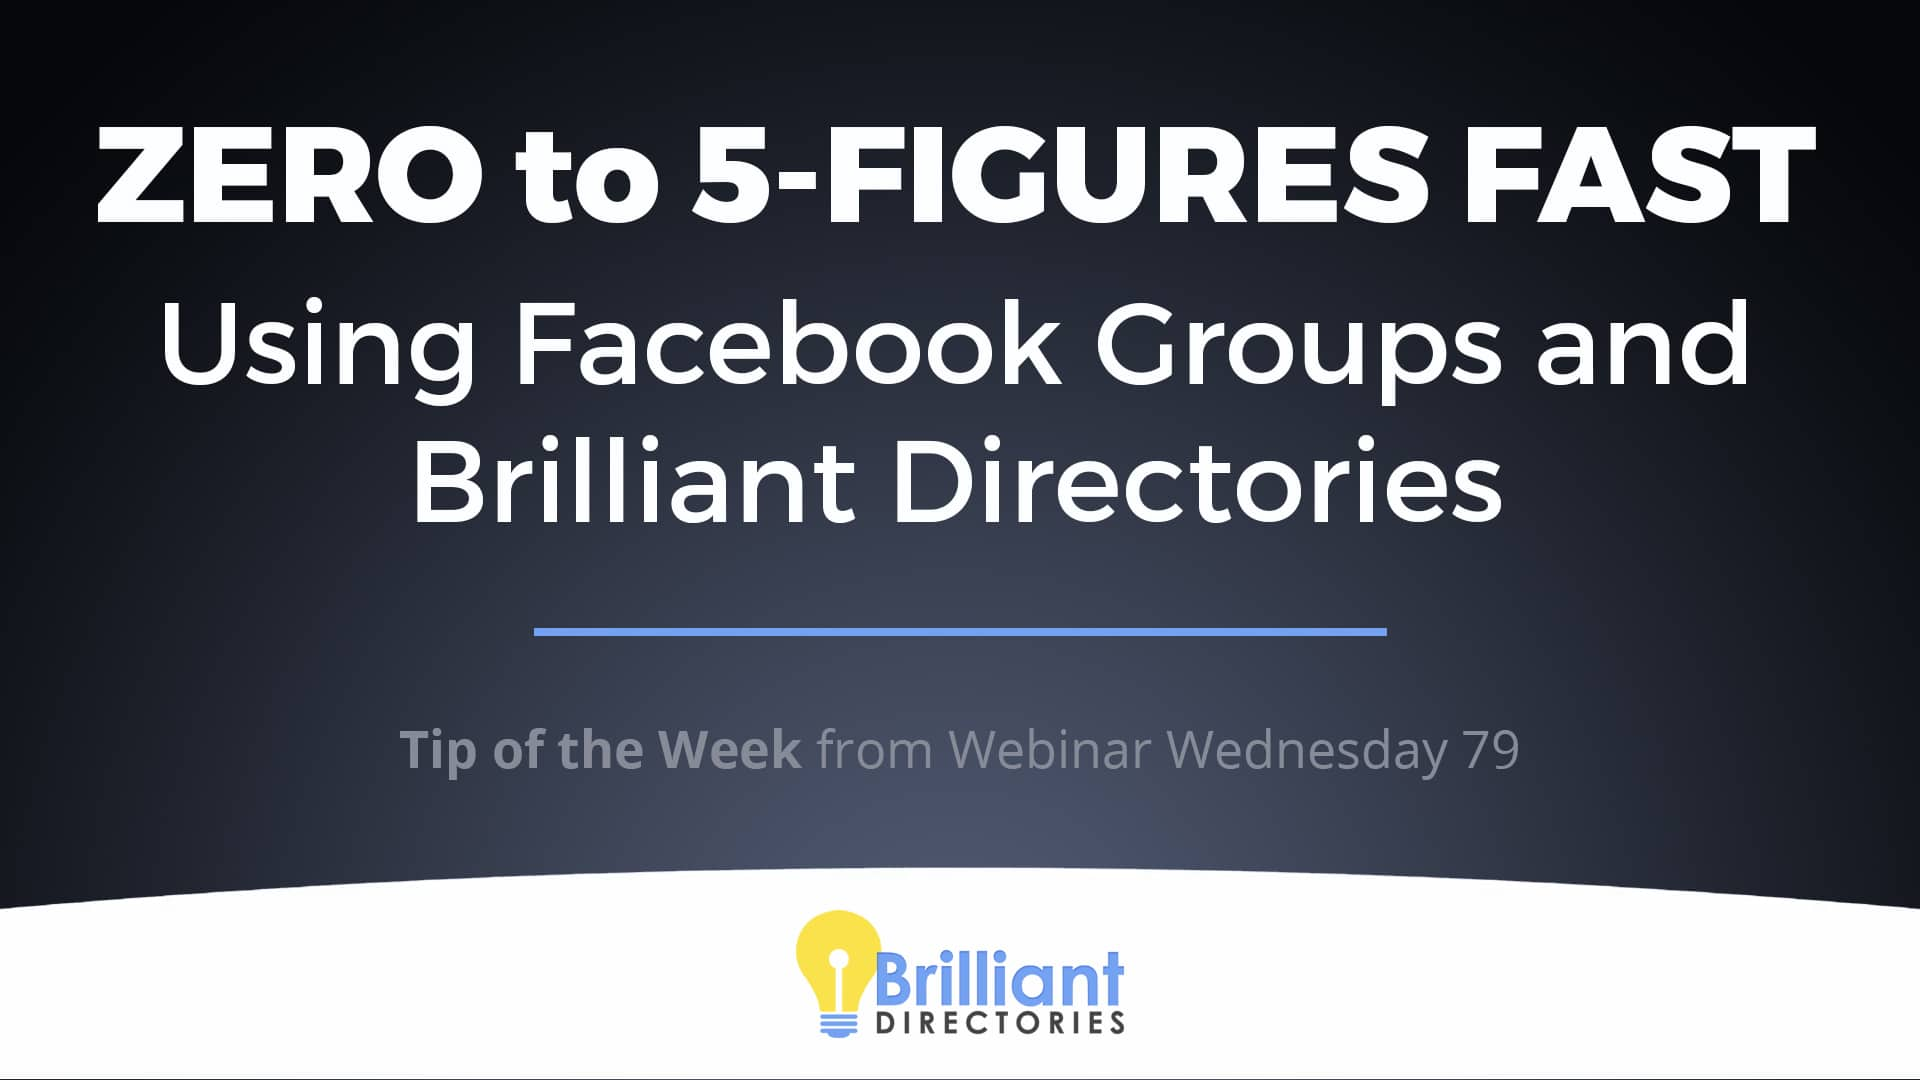 https://www.brilliantdirectories.com/blog/zero-to-five-figures-fast-using-fb-groups-and-brilliant-directories